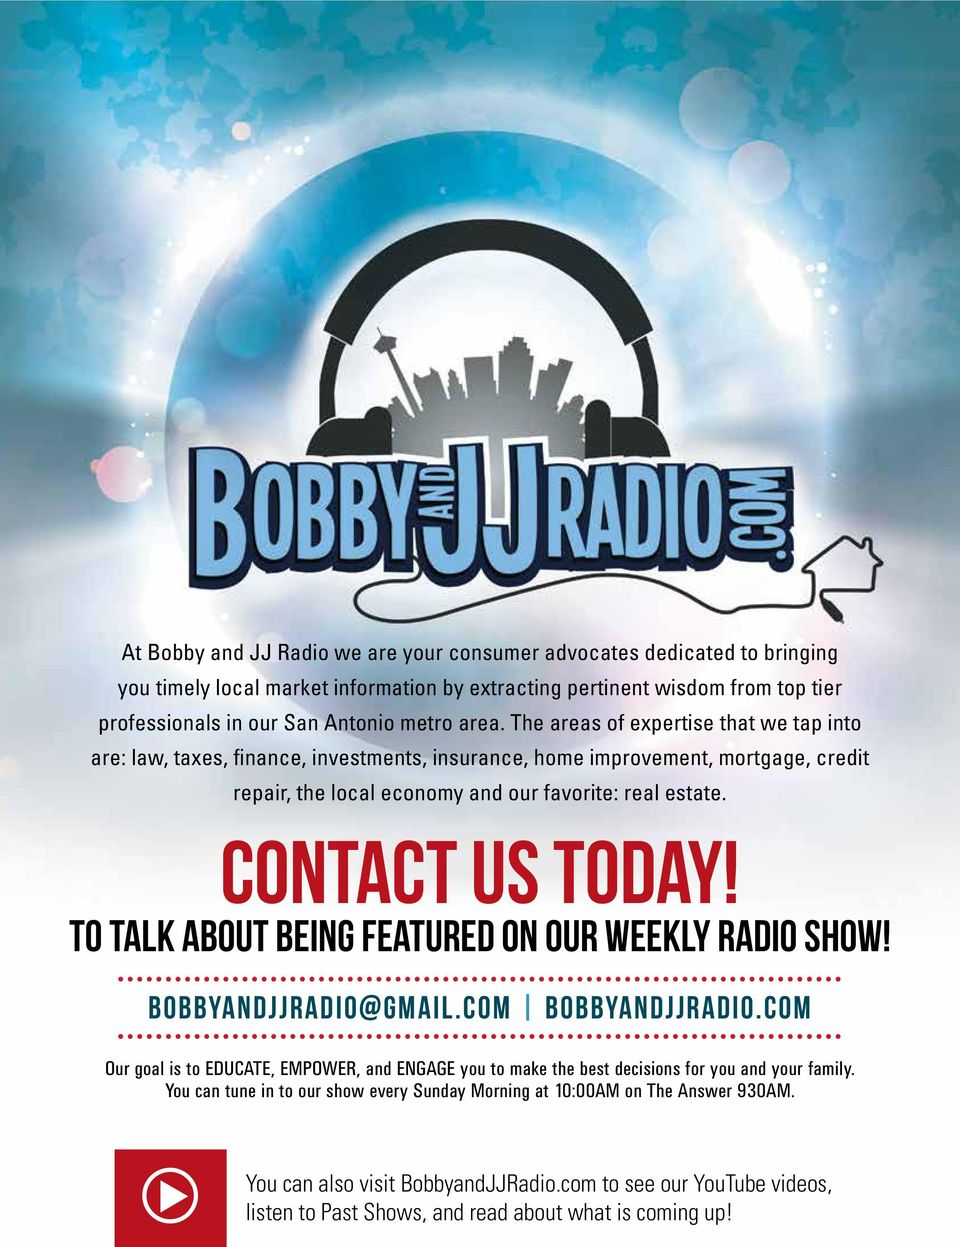 to talk about being featured on our weekly radio show! BobbyandJJradio@gmail.com BobbyandJJradio.com Our goal is to EDUCATE, EMPOWER, and ENGAGE you to make the best decisions for you and your family.